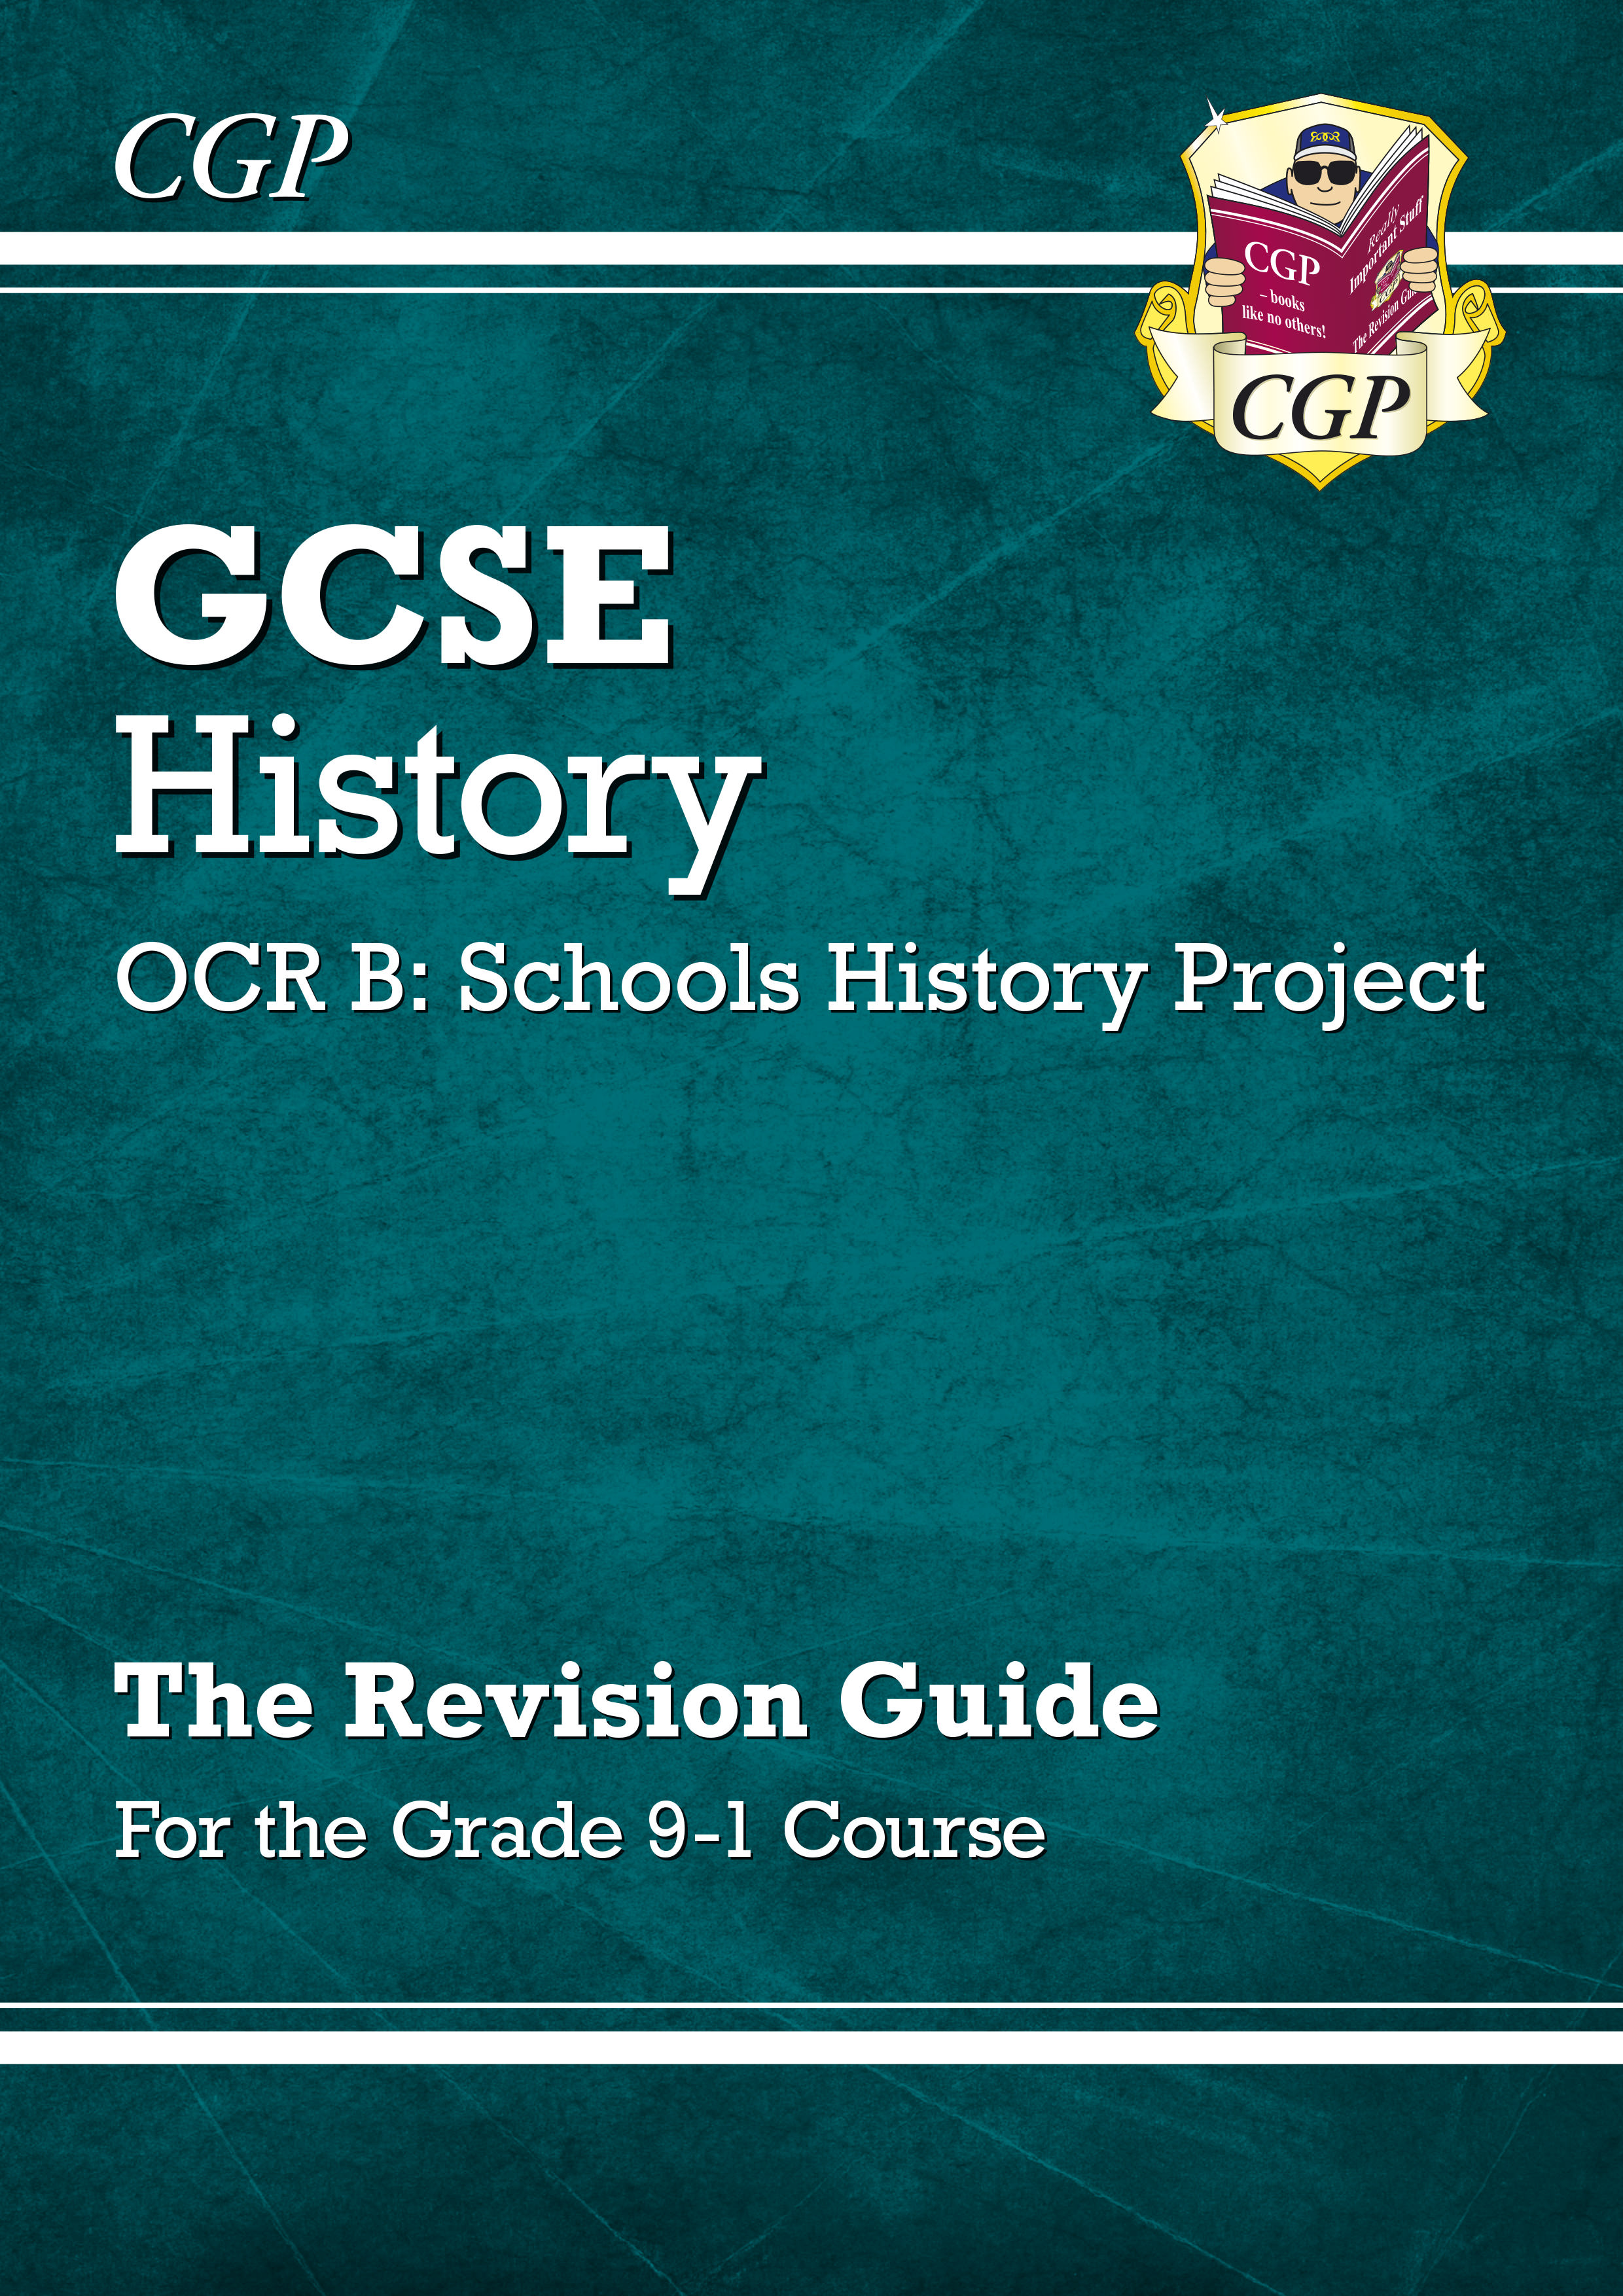 HPRR41DK - New GCSE History OCR B: Schools History Project Revision Guide - for the Grade 9-1 Course